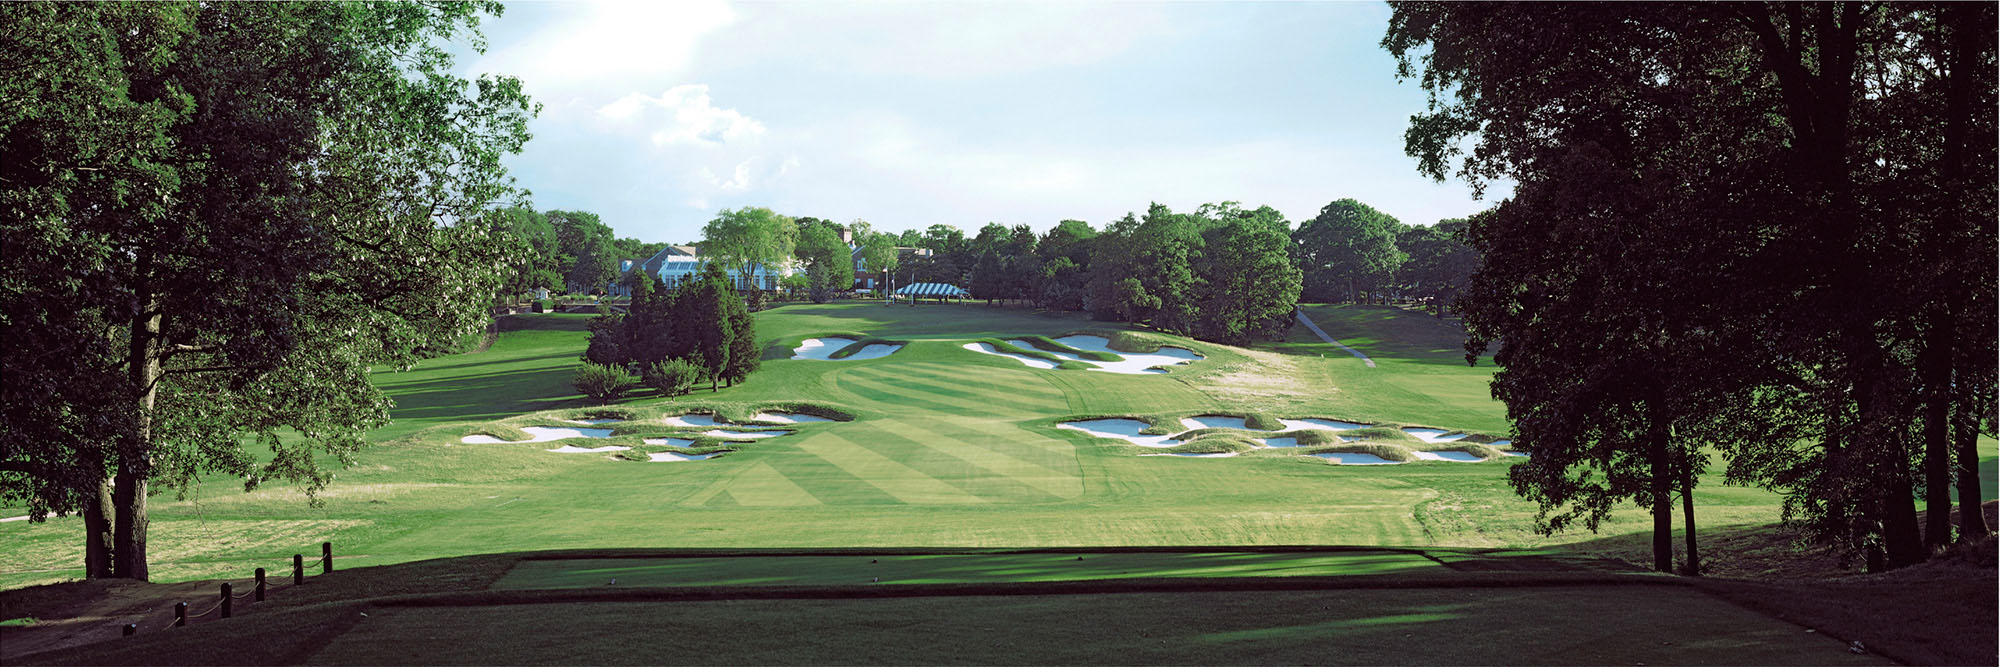 Golf Course Image - Bethpage No. 18